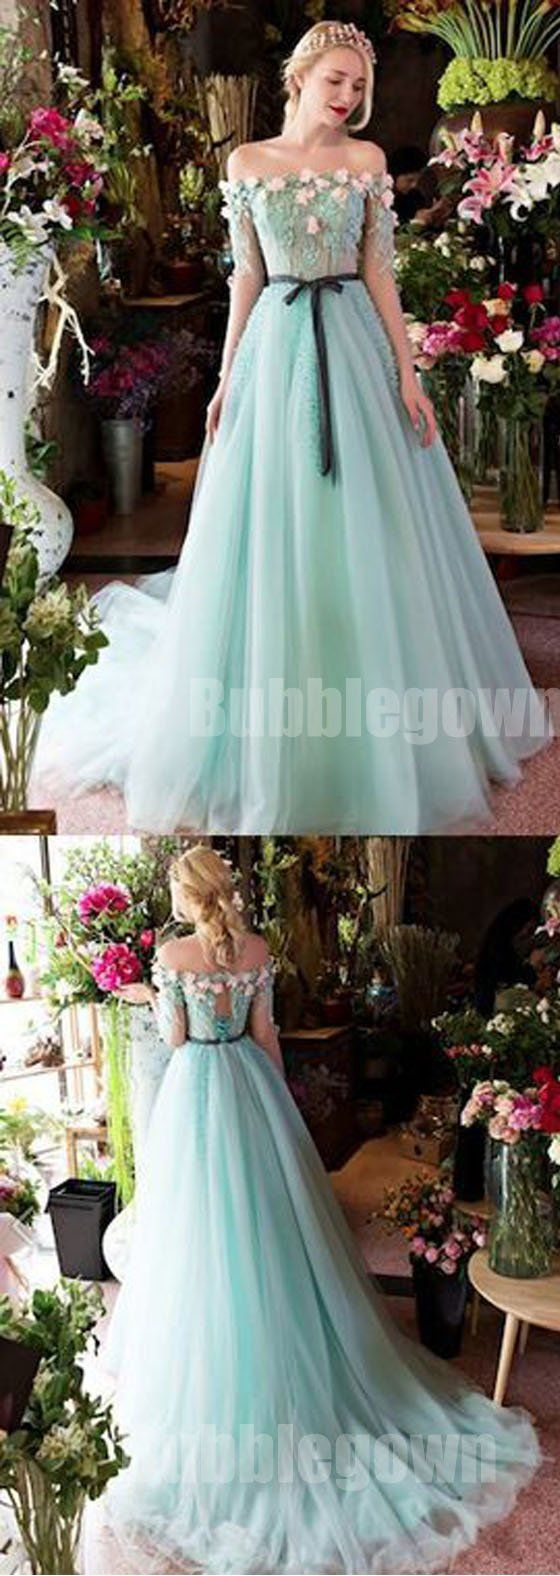 56 best If I went to an Oscar images on Pinterest | Nice dresses ...